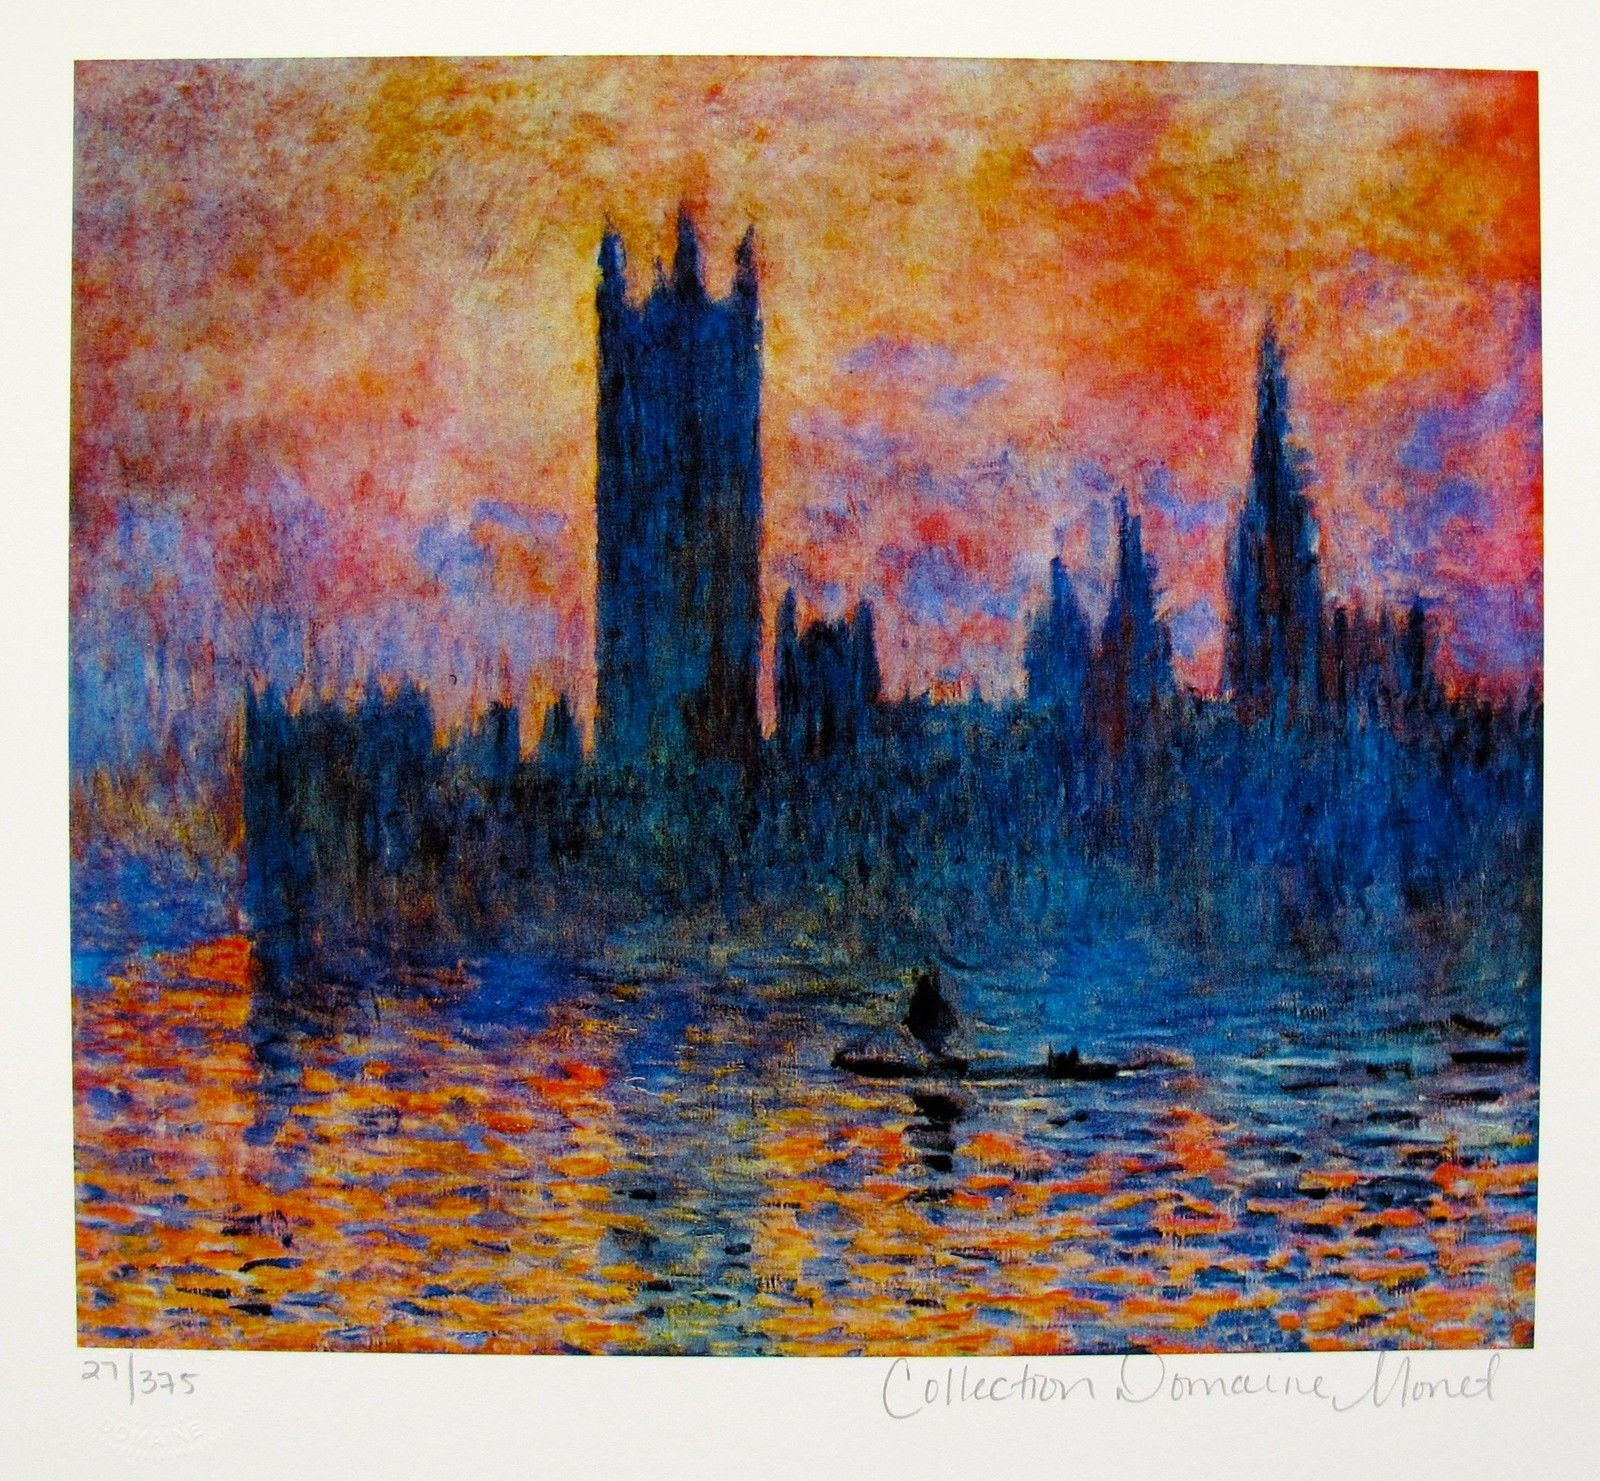 Claude Monet HOUSES OF PARLIAMENT Estate Signed & Stamped Limited Edition Small Giclee